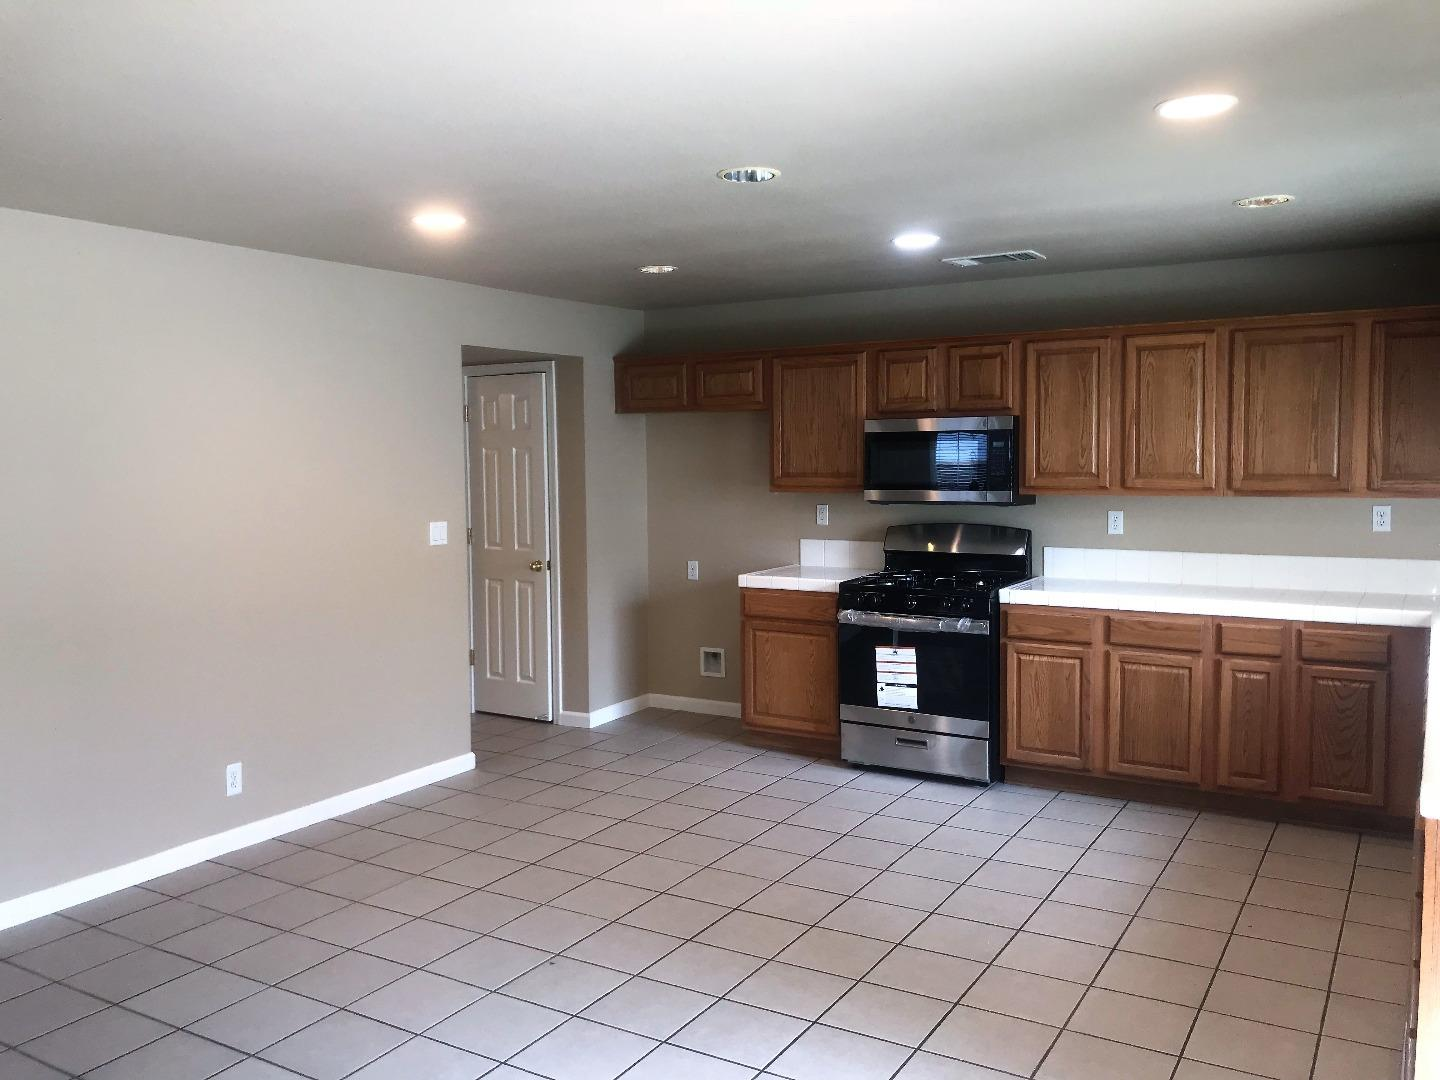 2369 S FALLBROOK DR, LOS BANOS, CA 93635  Photo 8